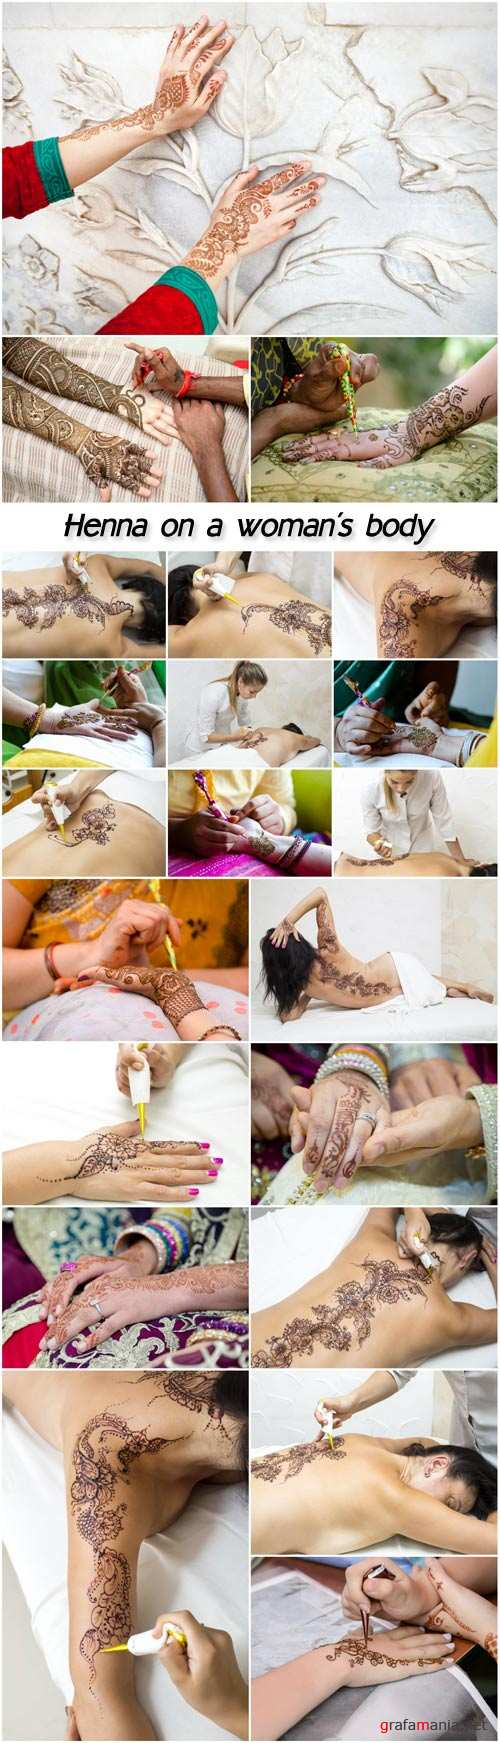 Henna on a woman's body